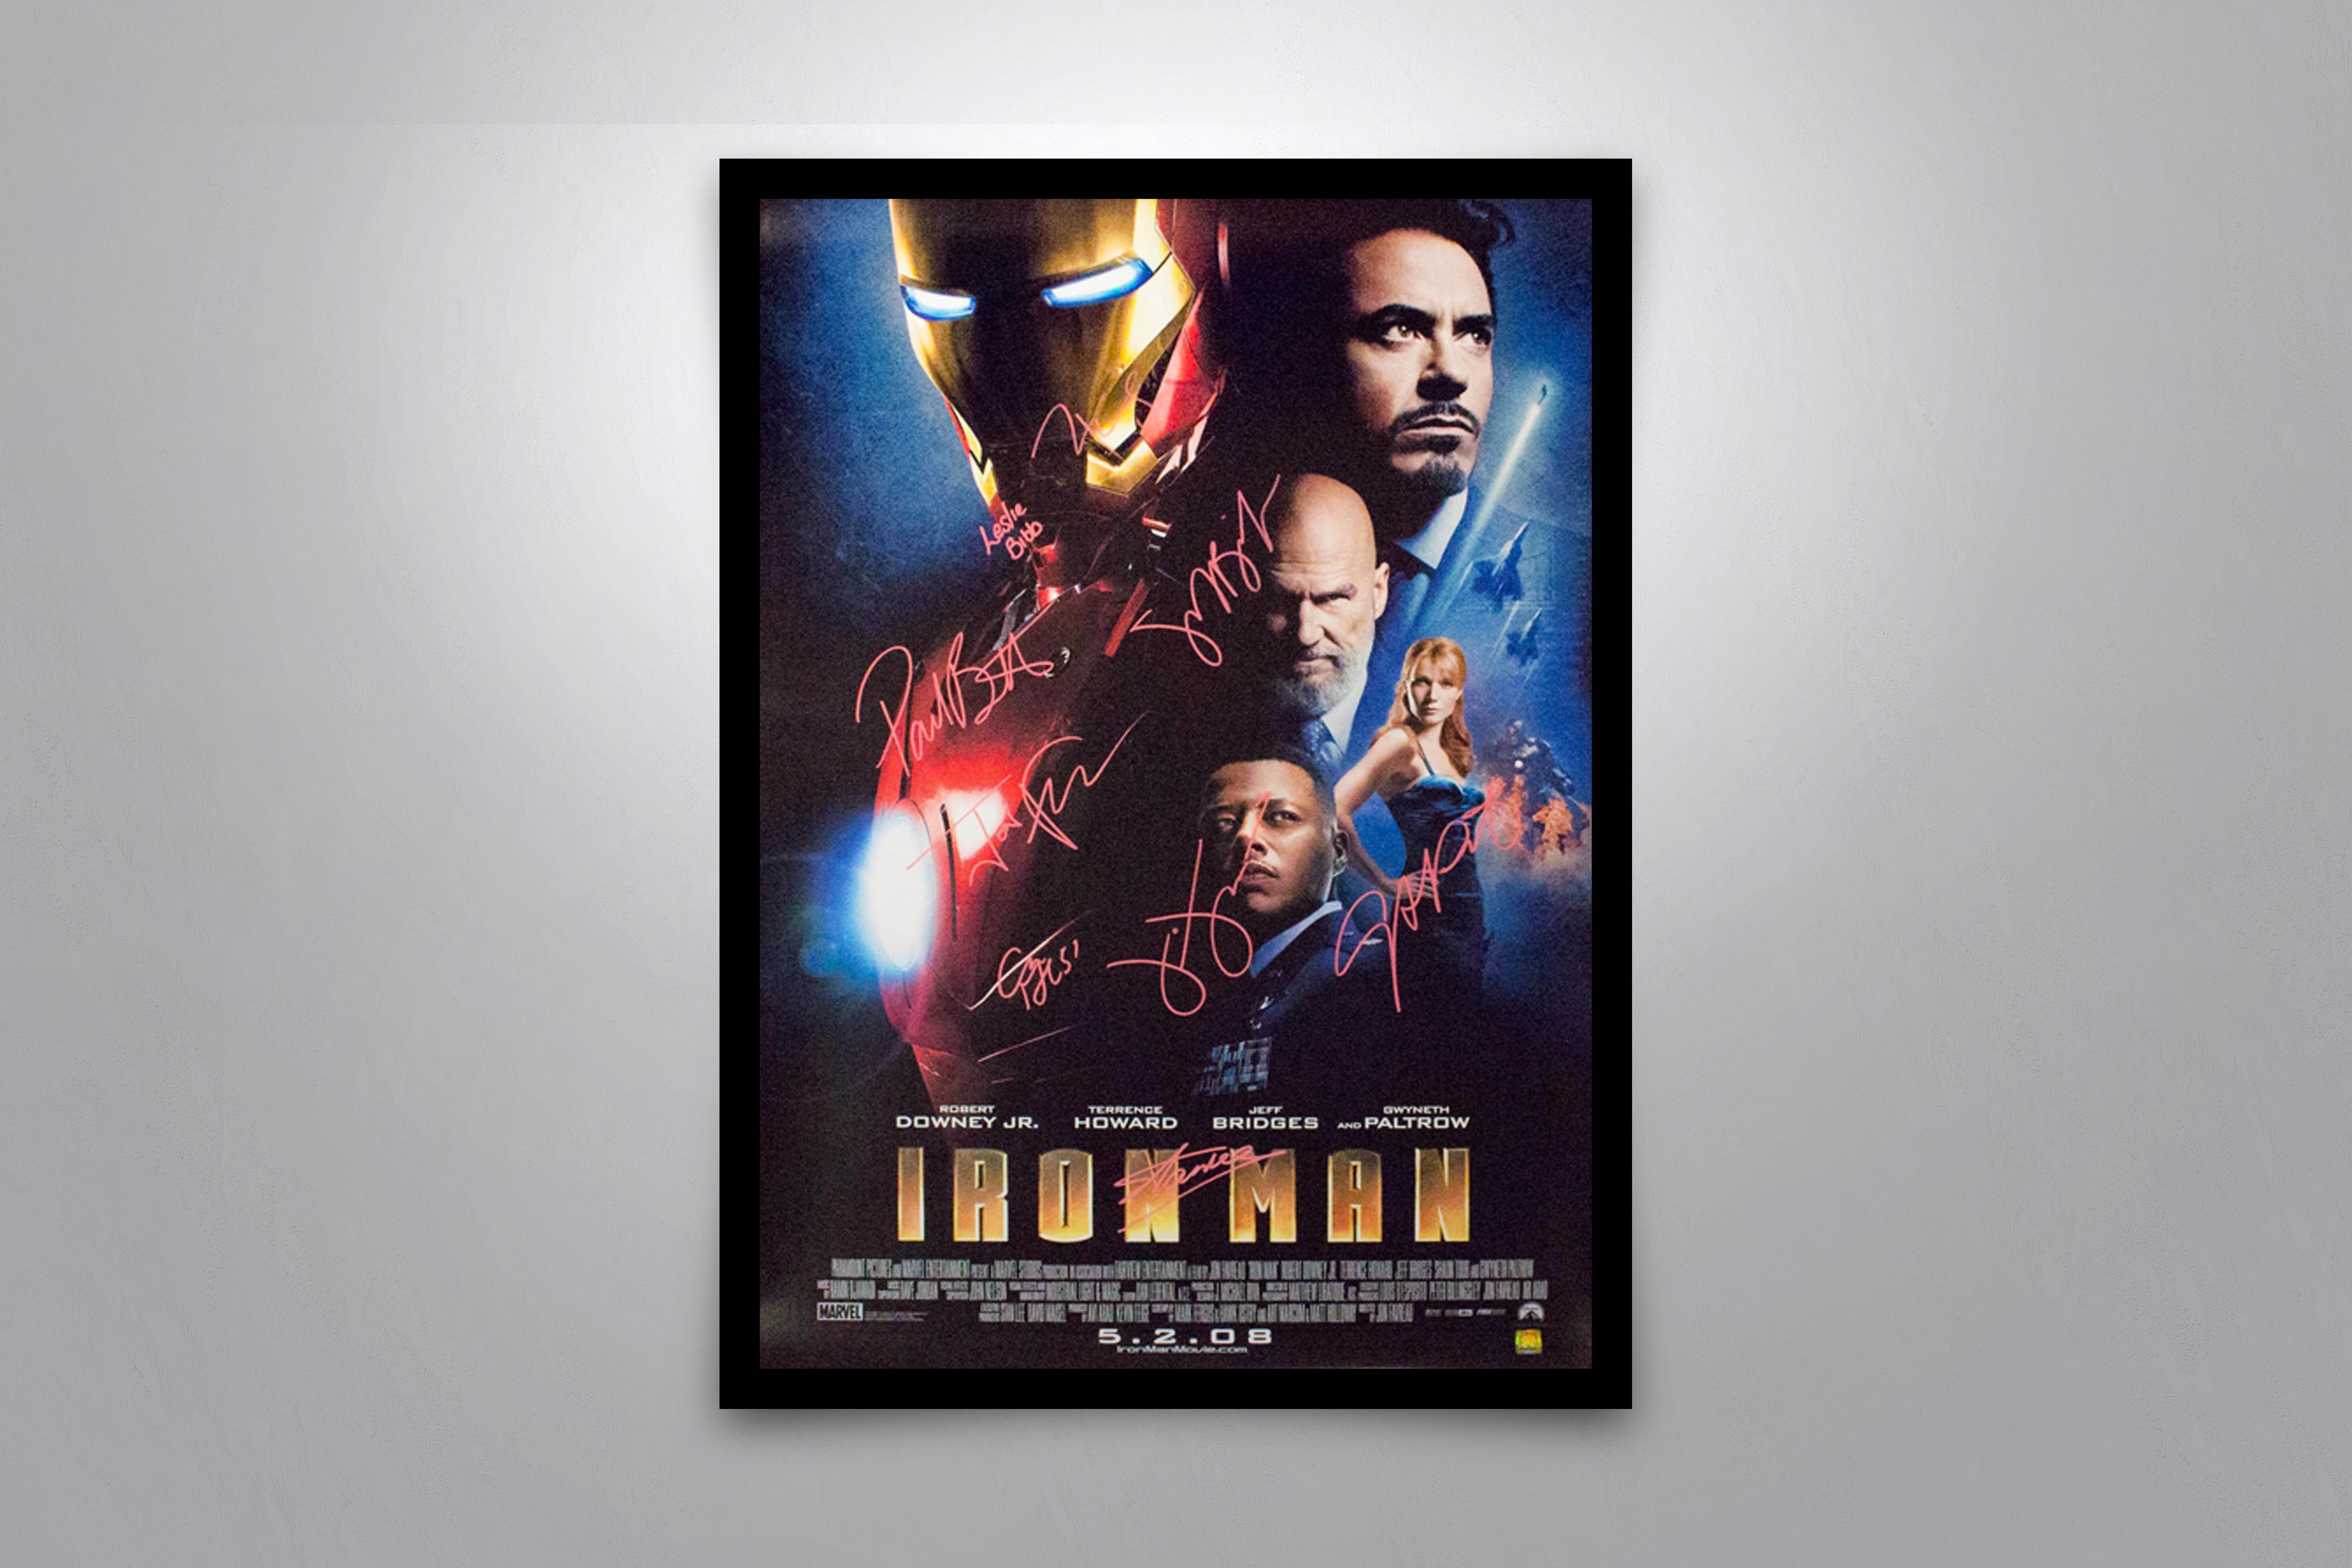 Iron man signed poster coa with images iron man